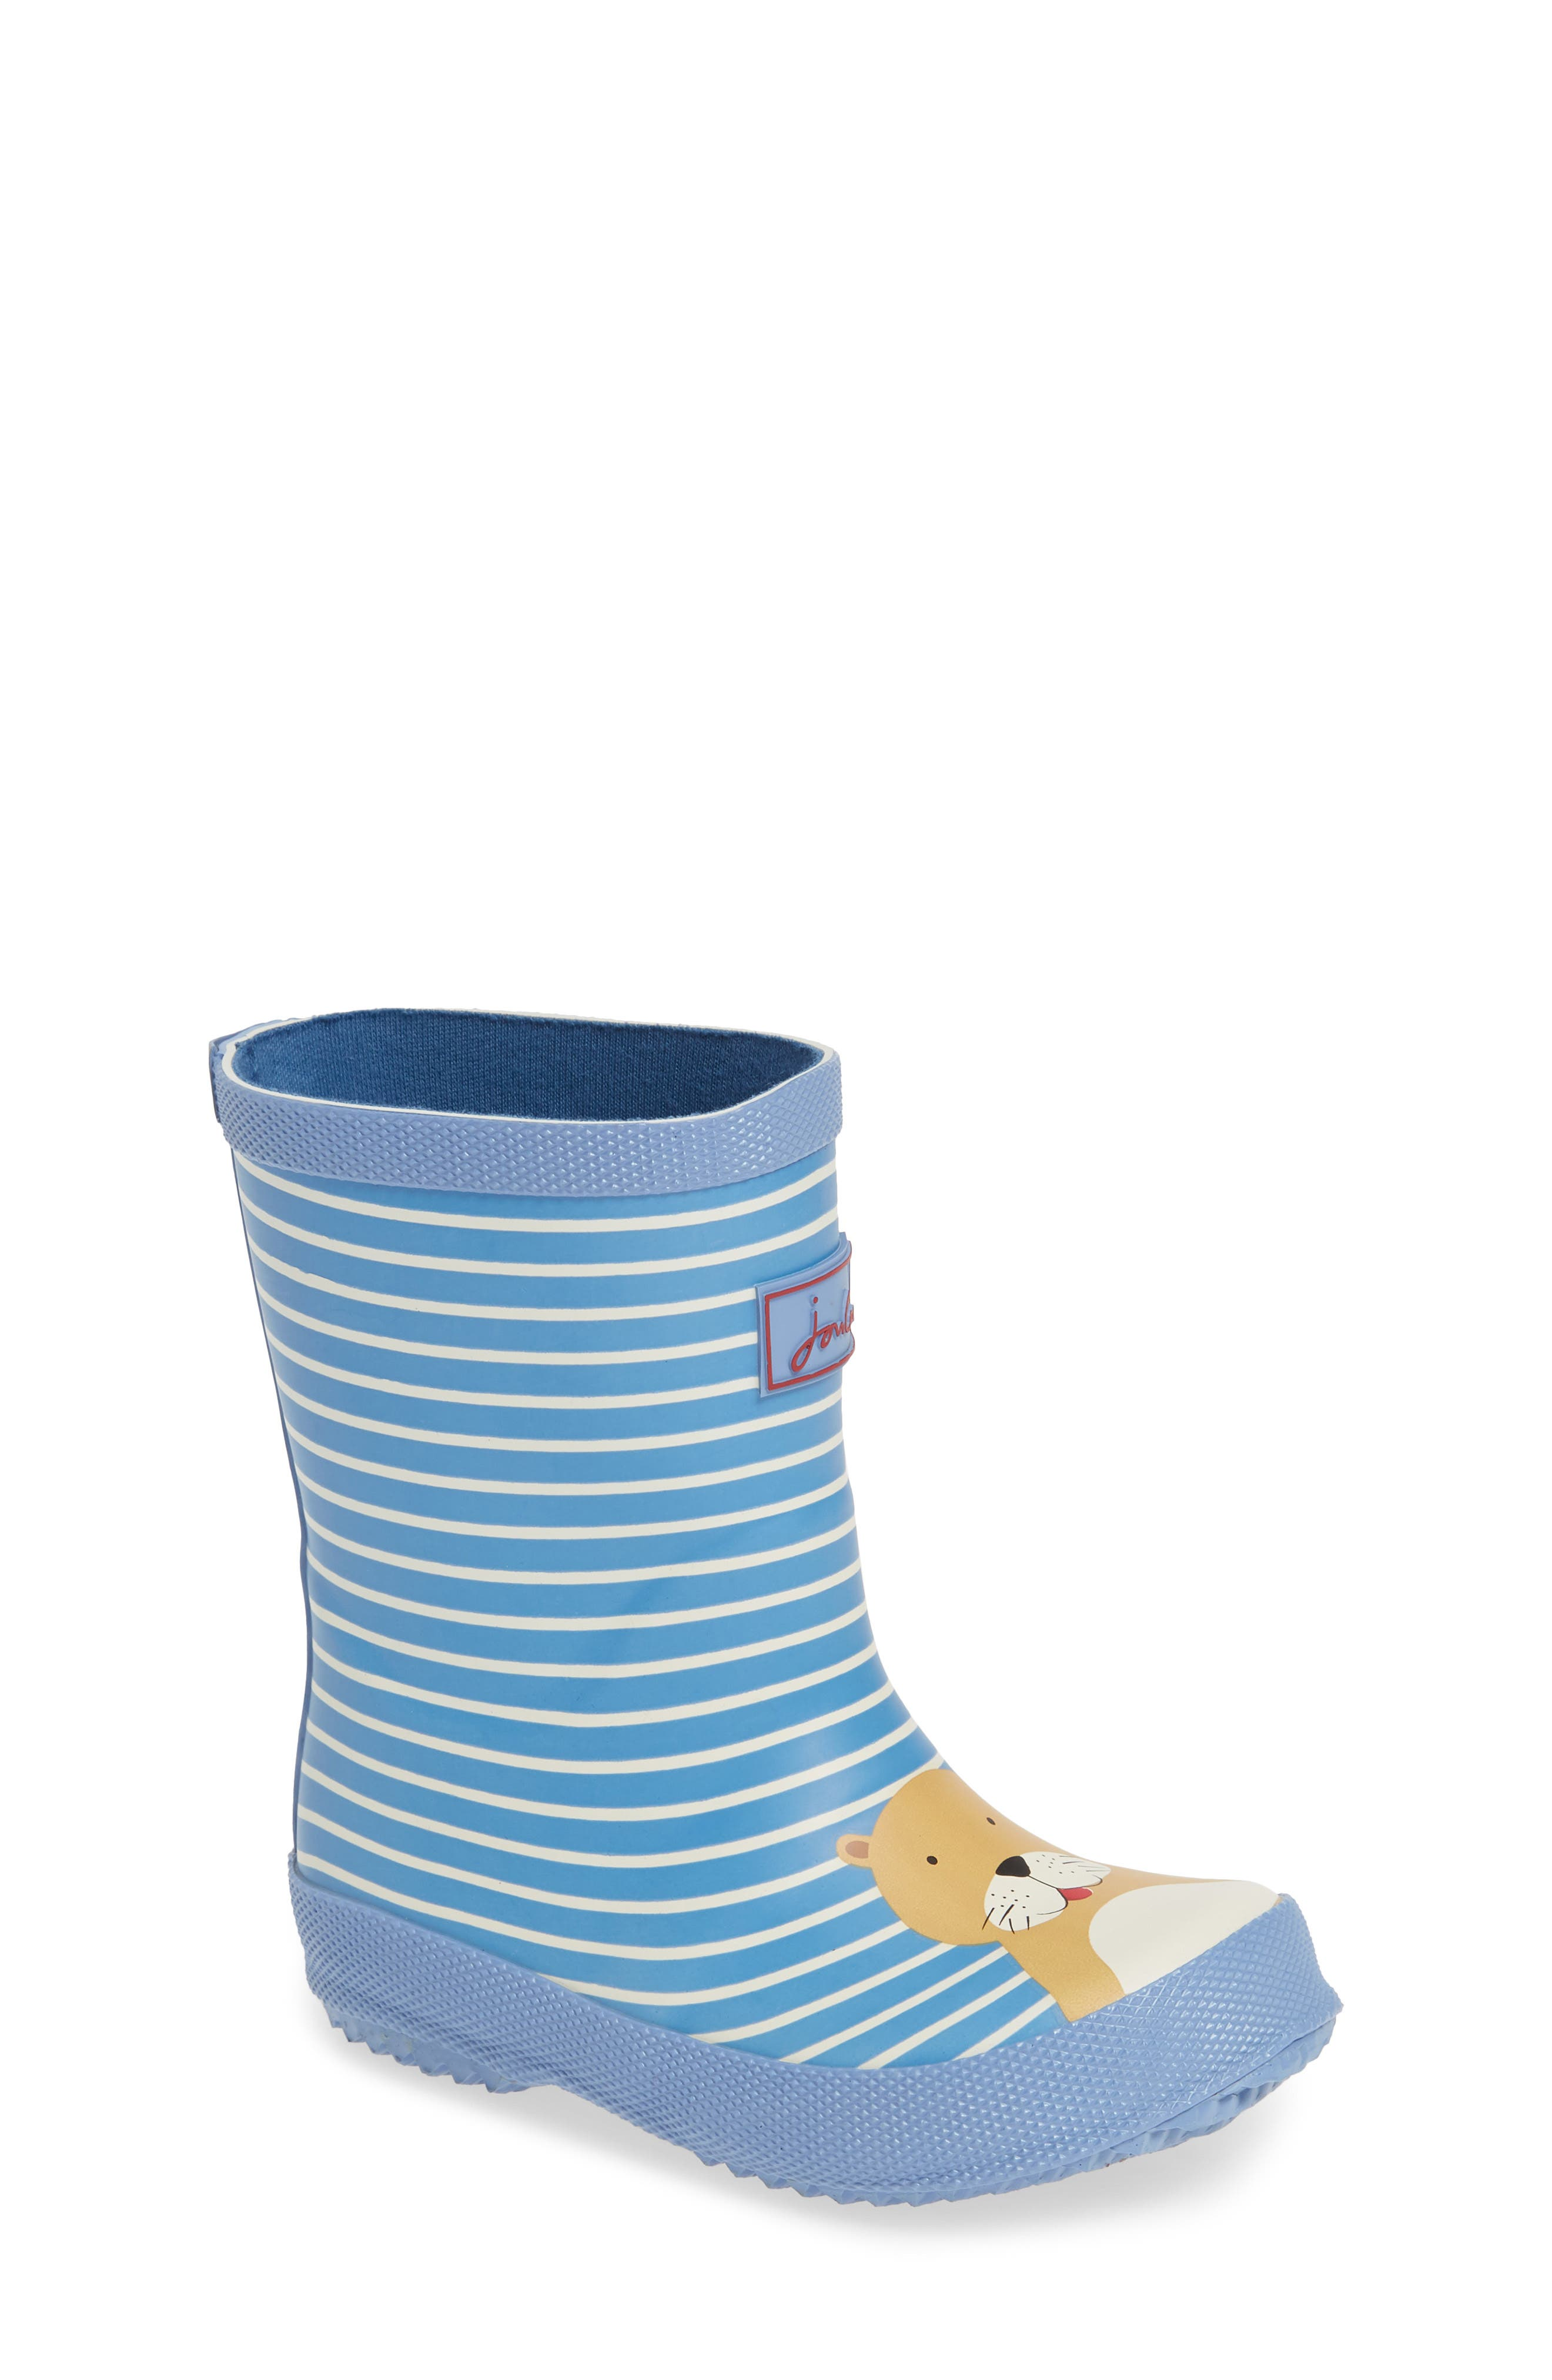 JOULES, Print Welly Rain Boot, Main thumbnail 1, color, 430